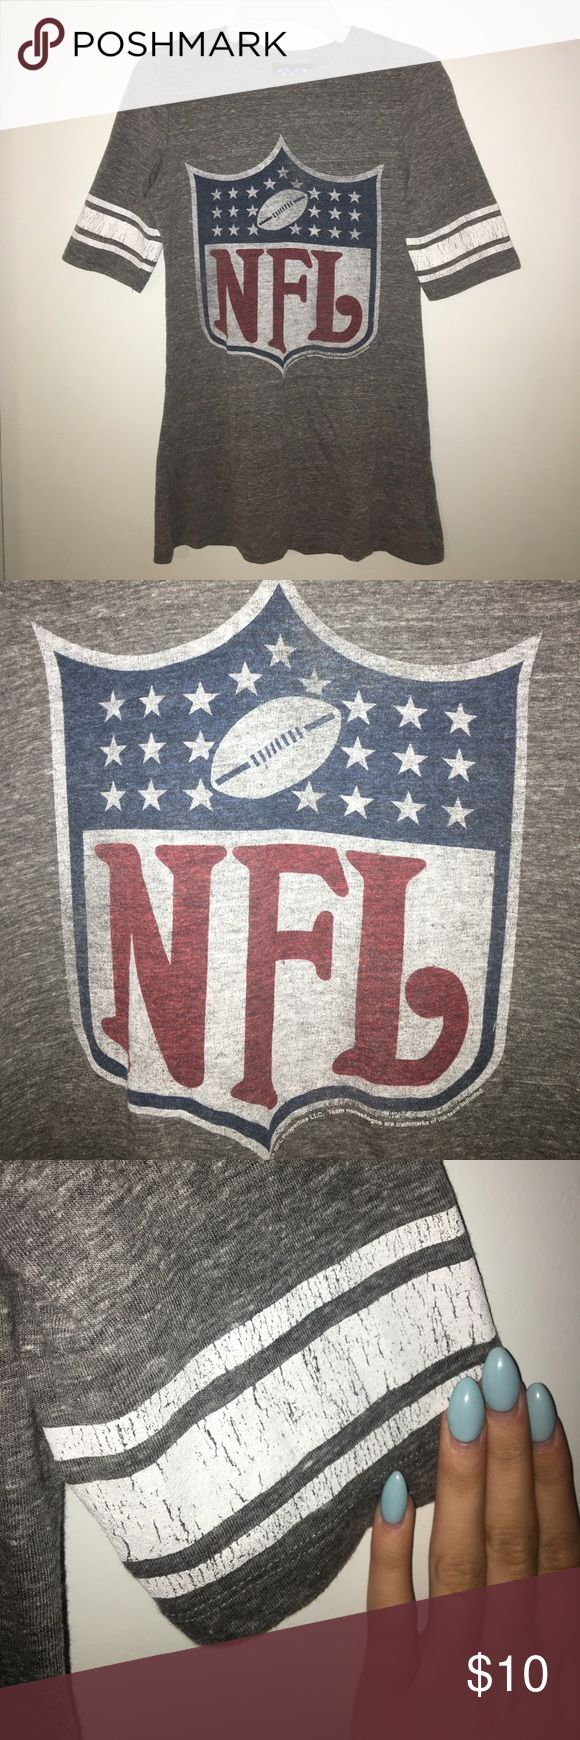 Women's NFL football tshirt women's size small gray NFL t shirt with nothing on back. white stripes on sleeves are cracked but they could be made like that. sleeves are mid-long✨ Junk Food Tops Tees - Short Sleeve